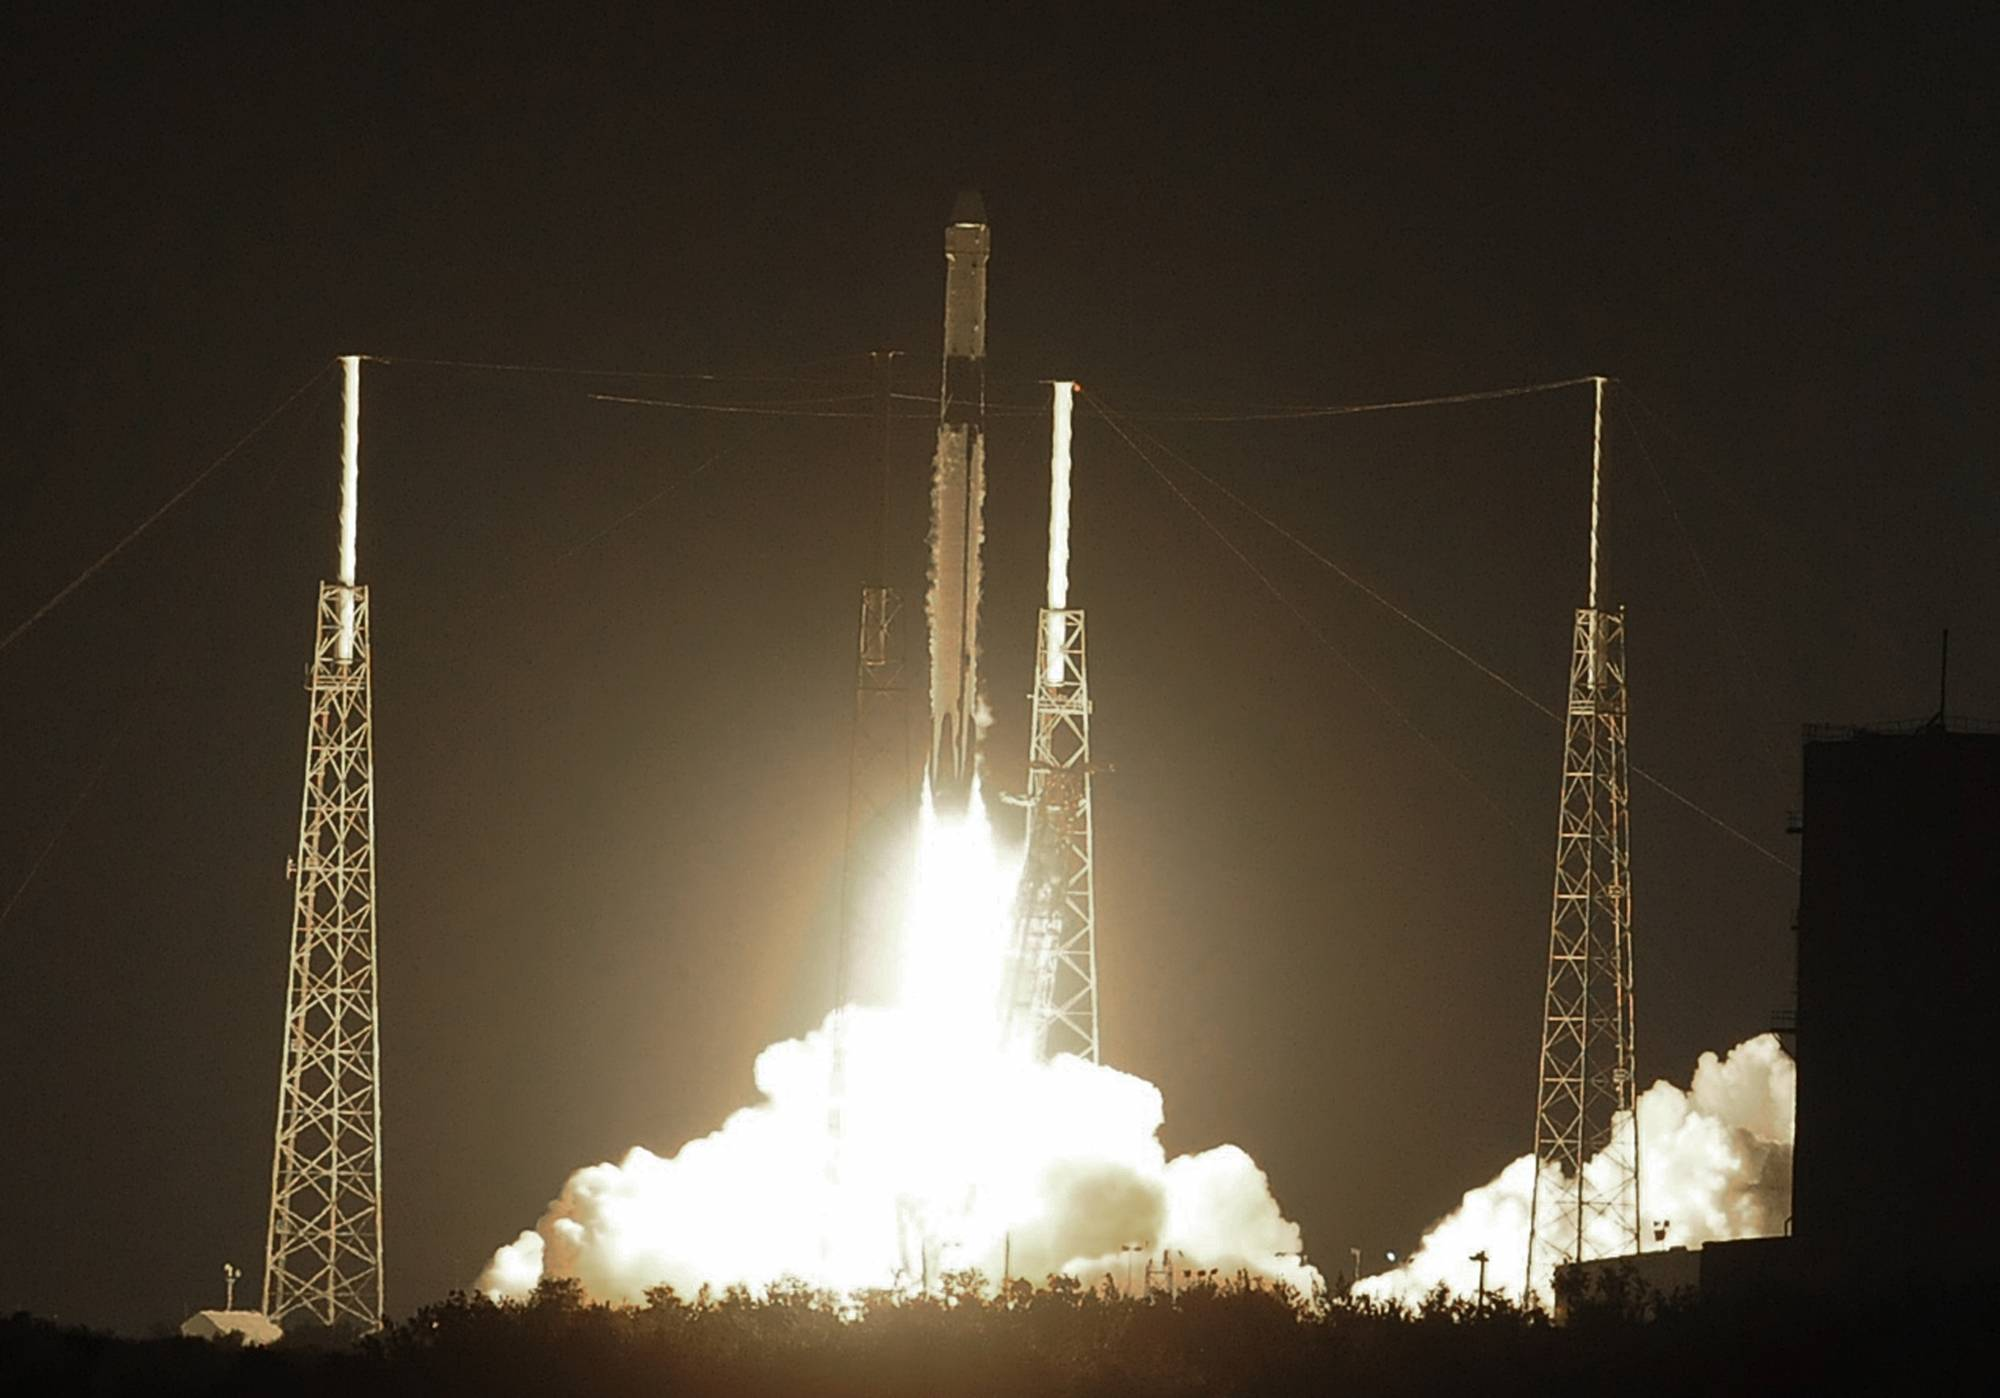 SpaceX Launches First Internet Satellites, But Viasat's Stock Jumps